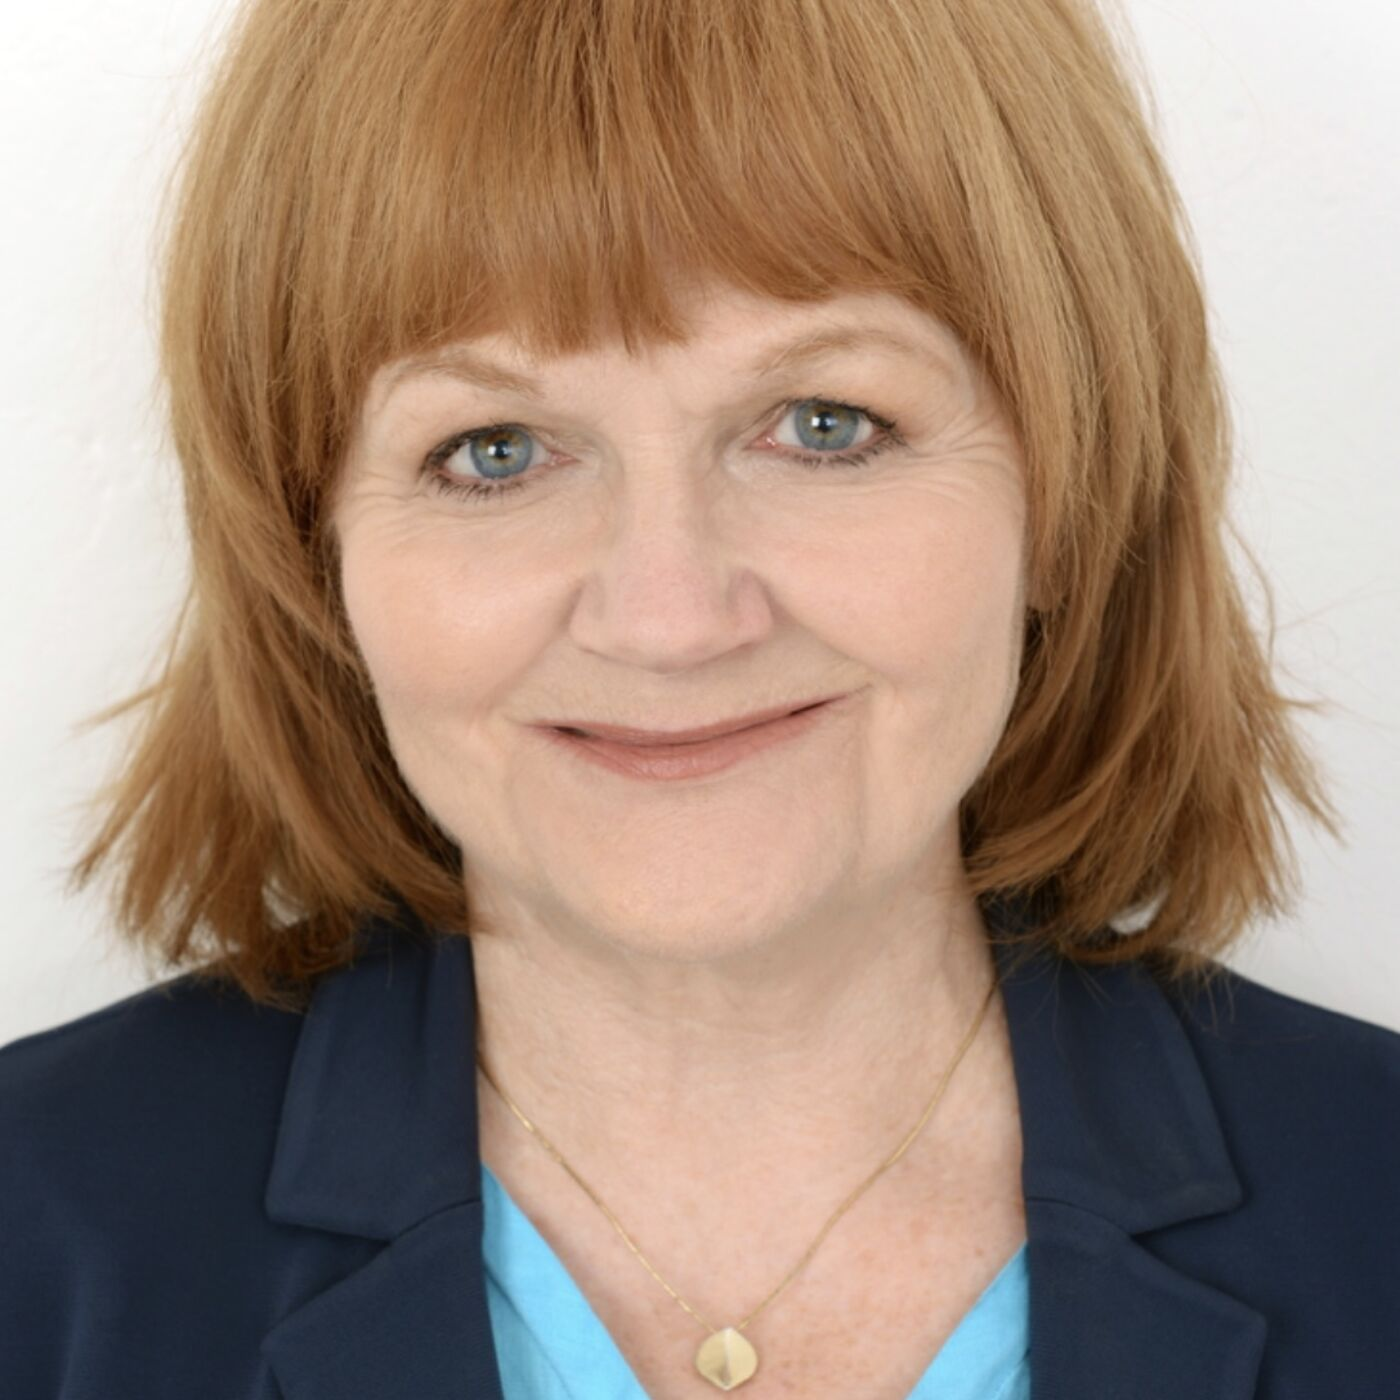 Great British Film: The East is East at 21 Interviews. No.2 - Lesley Nicol who played Auntie Annie